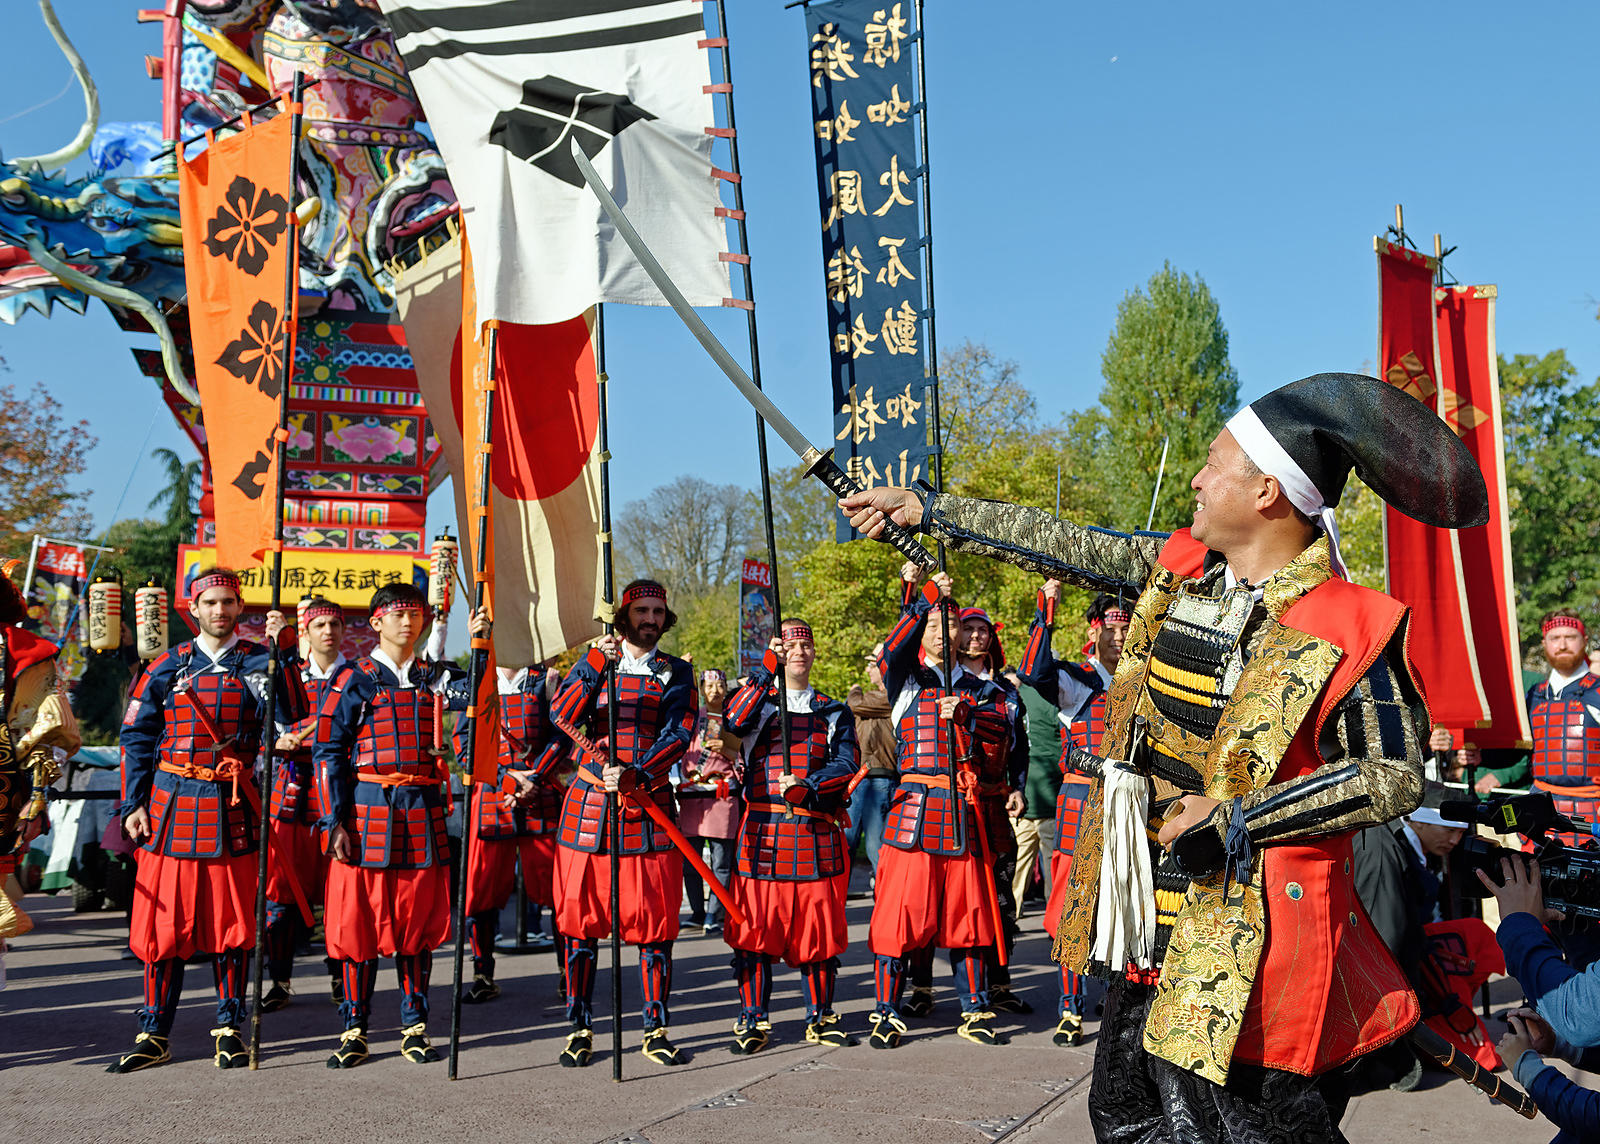 Grand Matsuri, Paris, Jardin d'acclimatation, octobre 2018